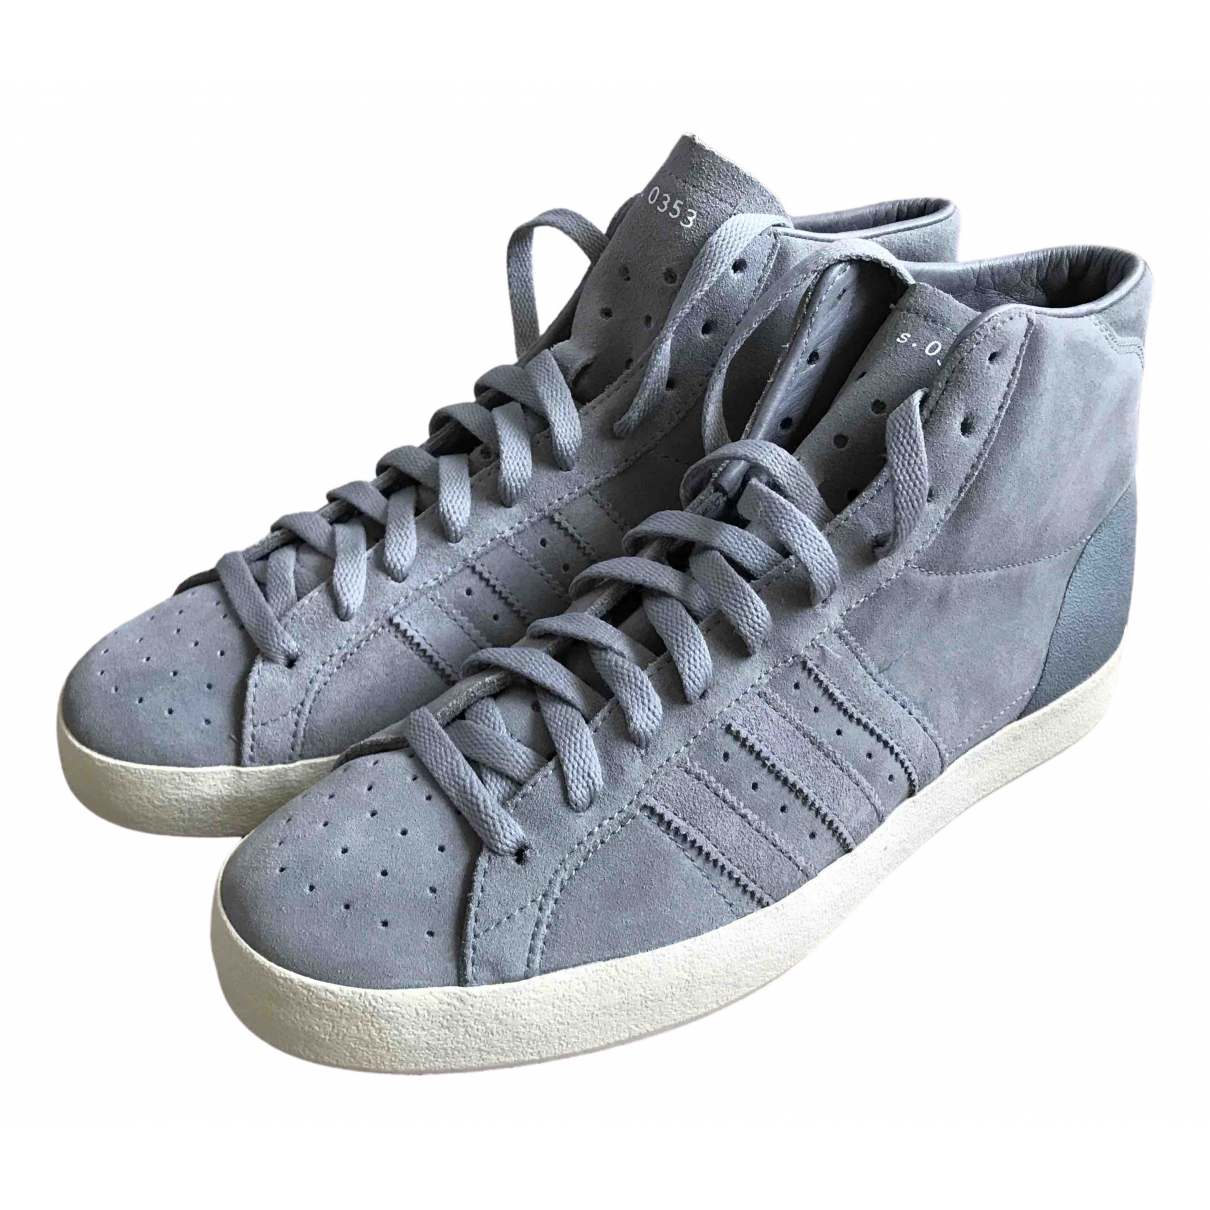 Adidas \N Grey Suede Trainers for Men 9 US